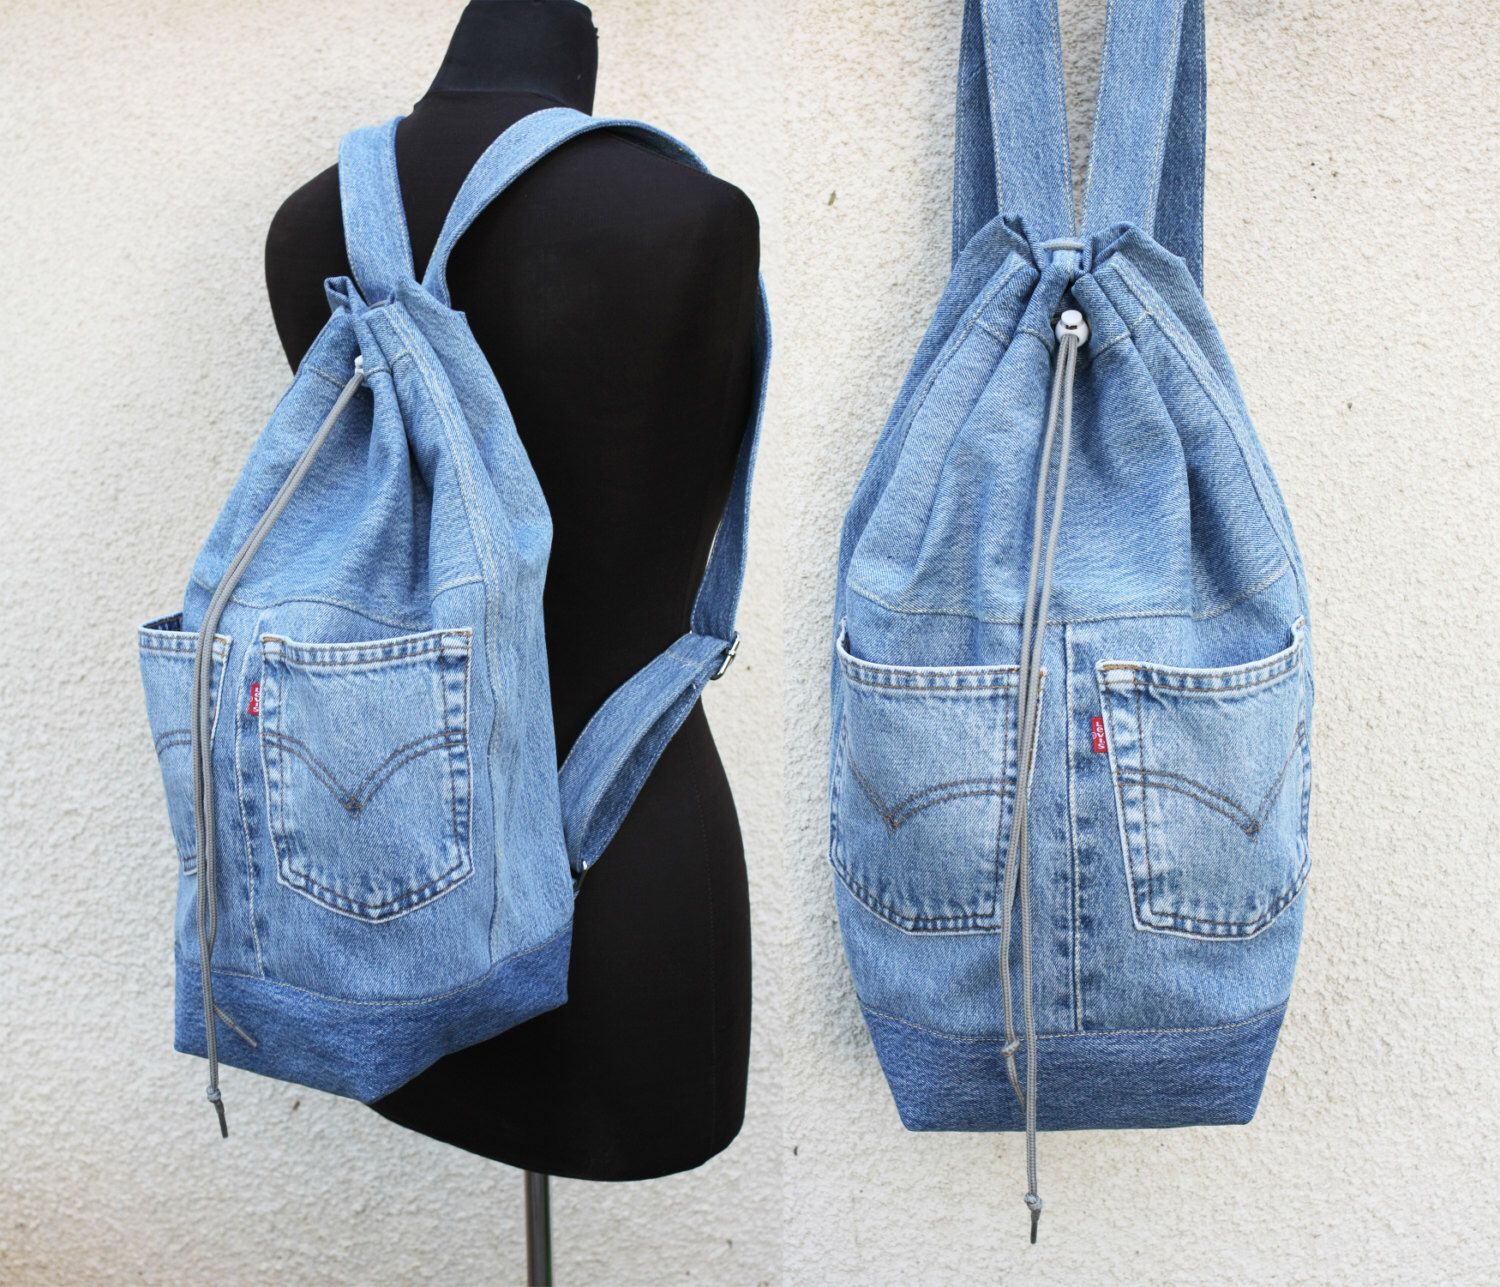 denim backpack upcycled jeans big drawstring backpack bucket bag 90s grunge hipster backpack eco friendly recycled repurposed jean backpack by UpcycledDenimShop on Etsy https://www.etsy.com/listing/265112161/denim-backpack-upcycled-jeans-big